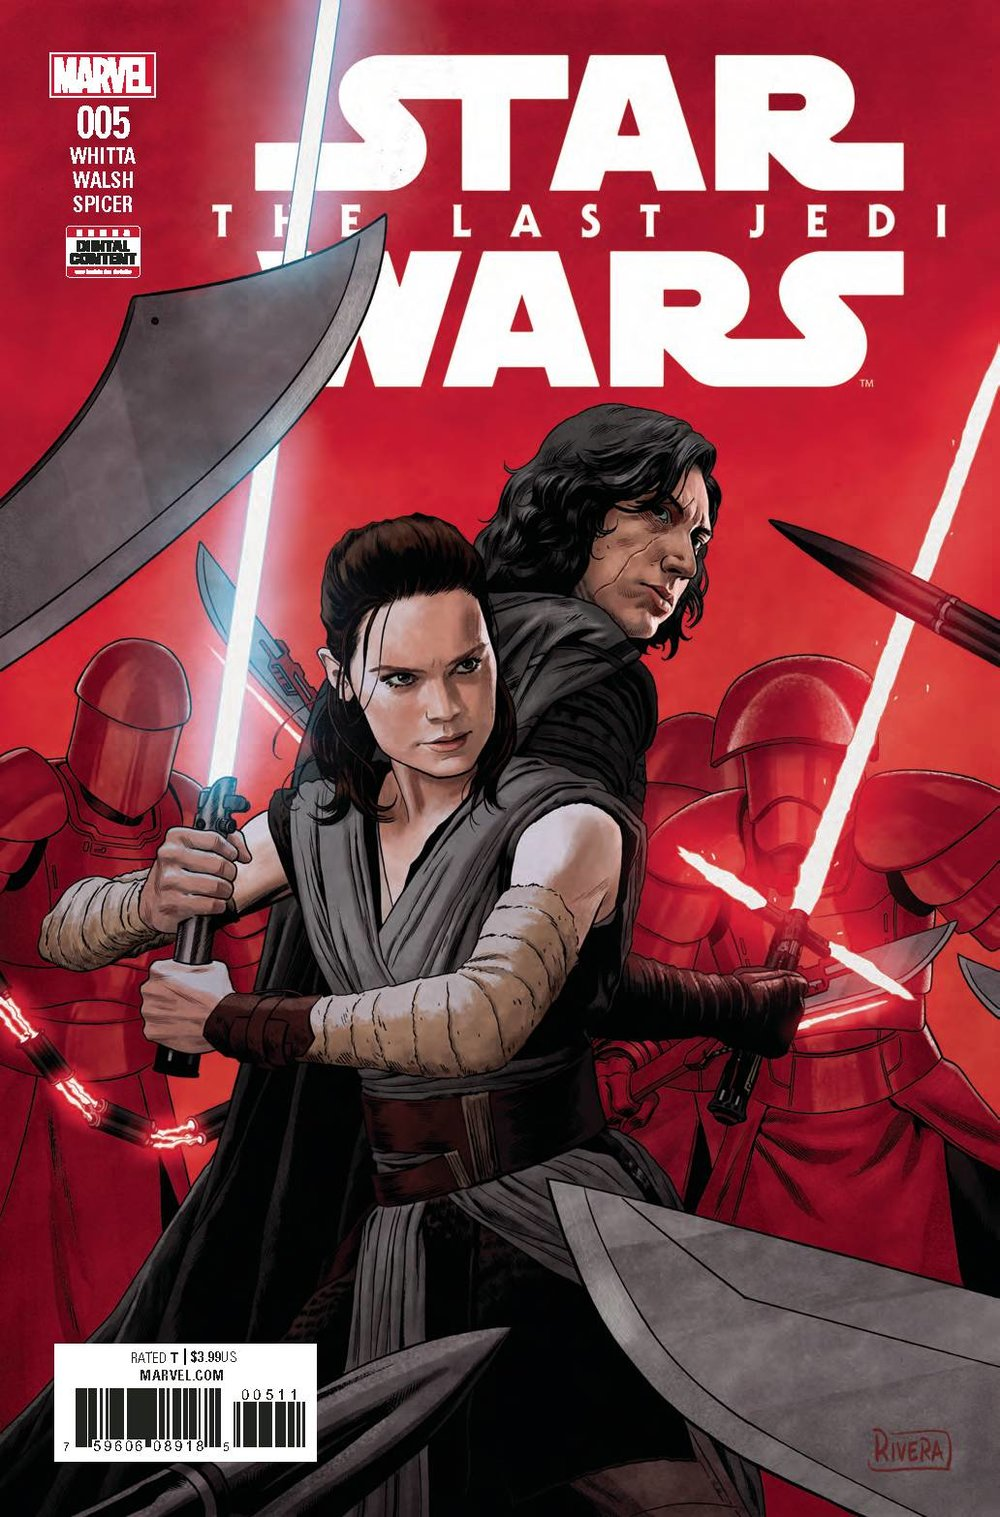 STAR WARS LAST JEDI ADAPTATION 5 of 6.jpg